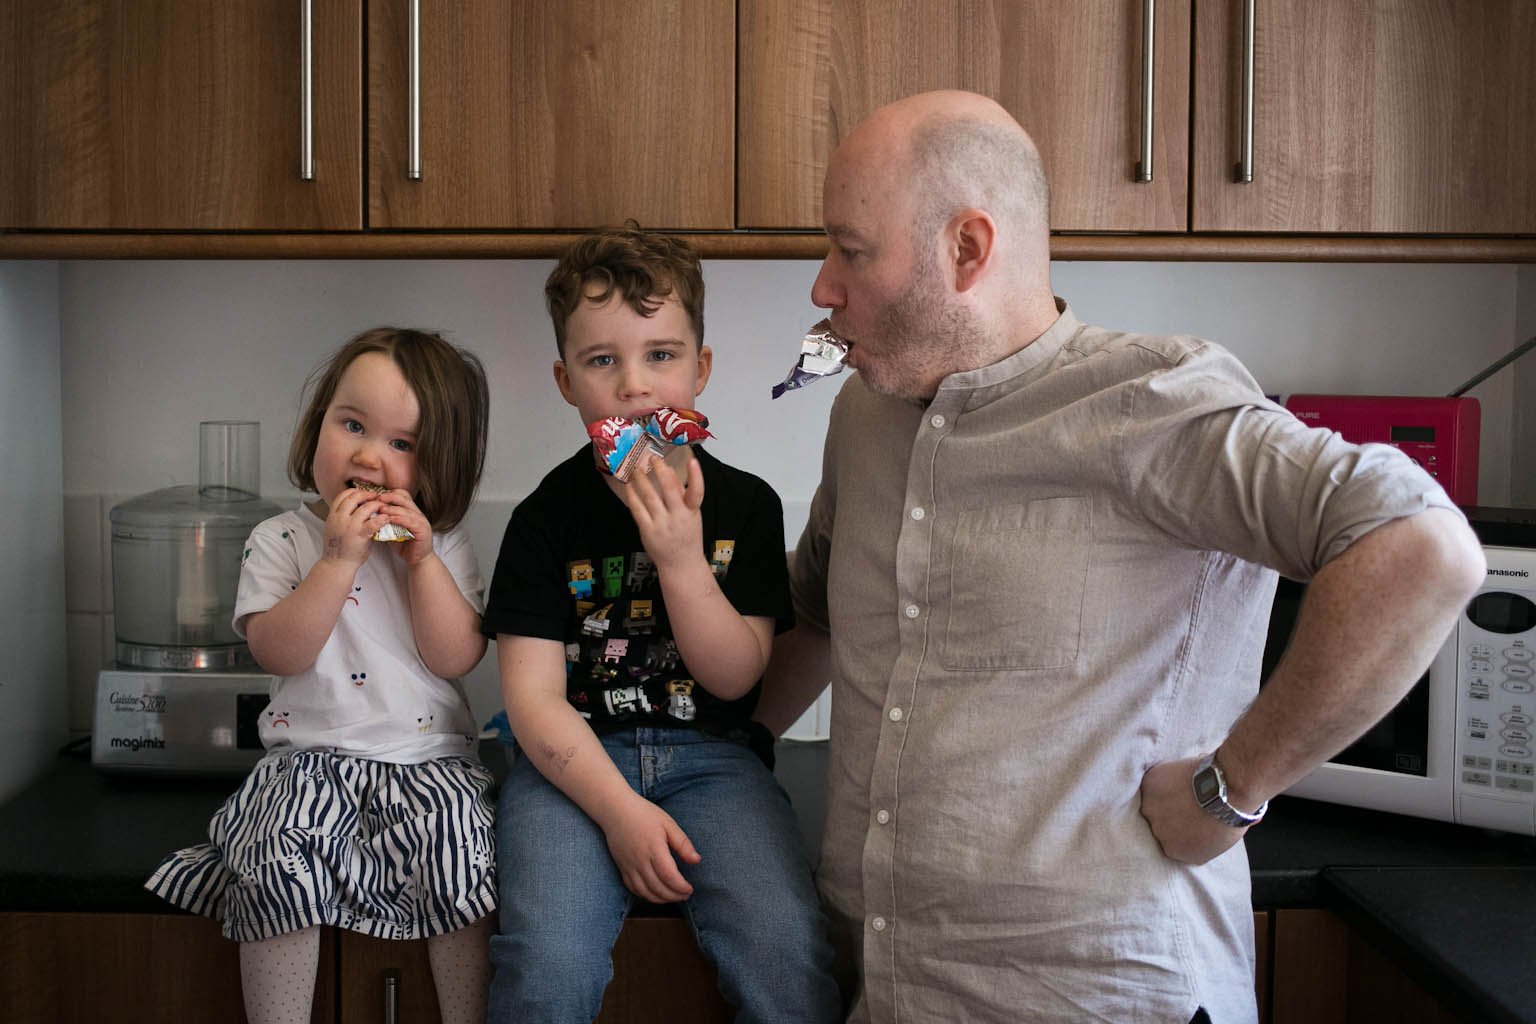 Siblings eating snack bars looking to camera while dad jokes with snack bar in mouth